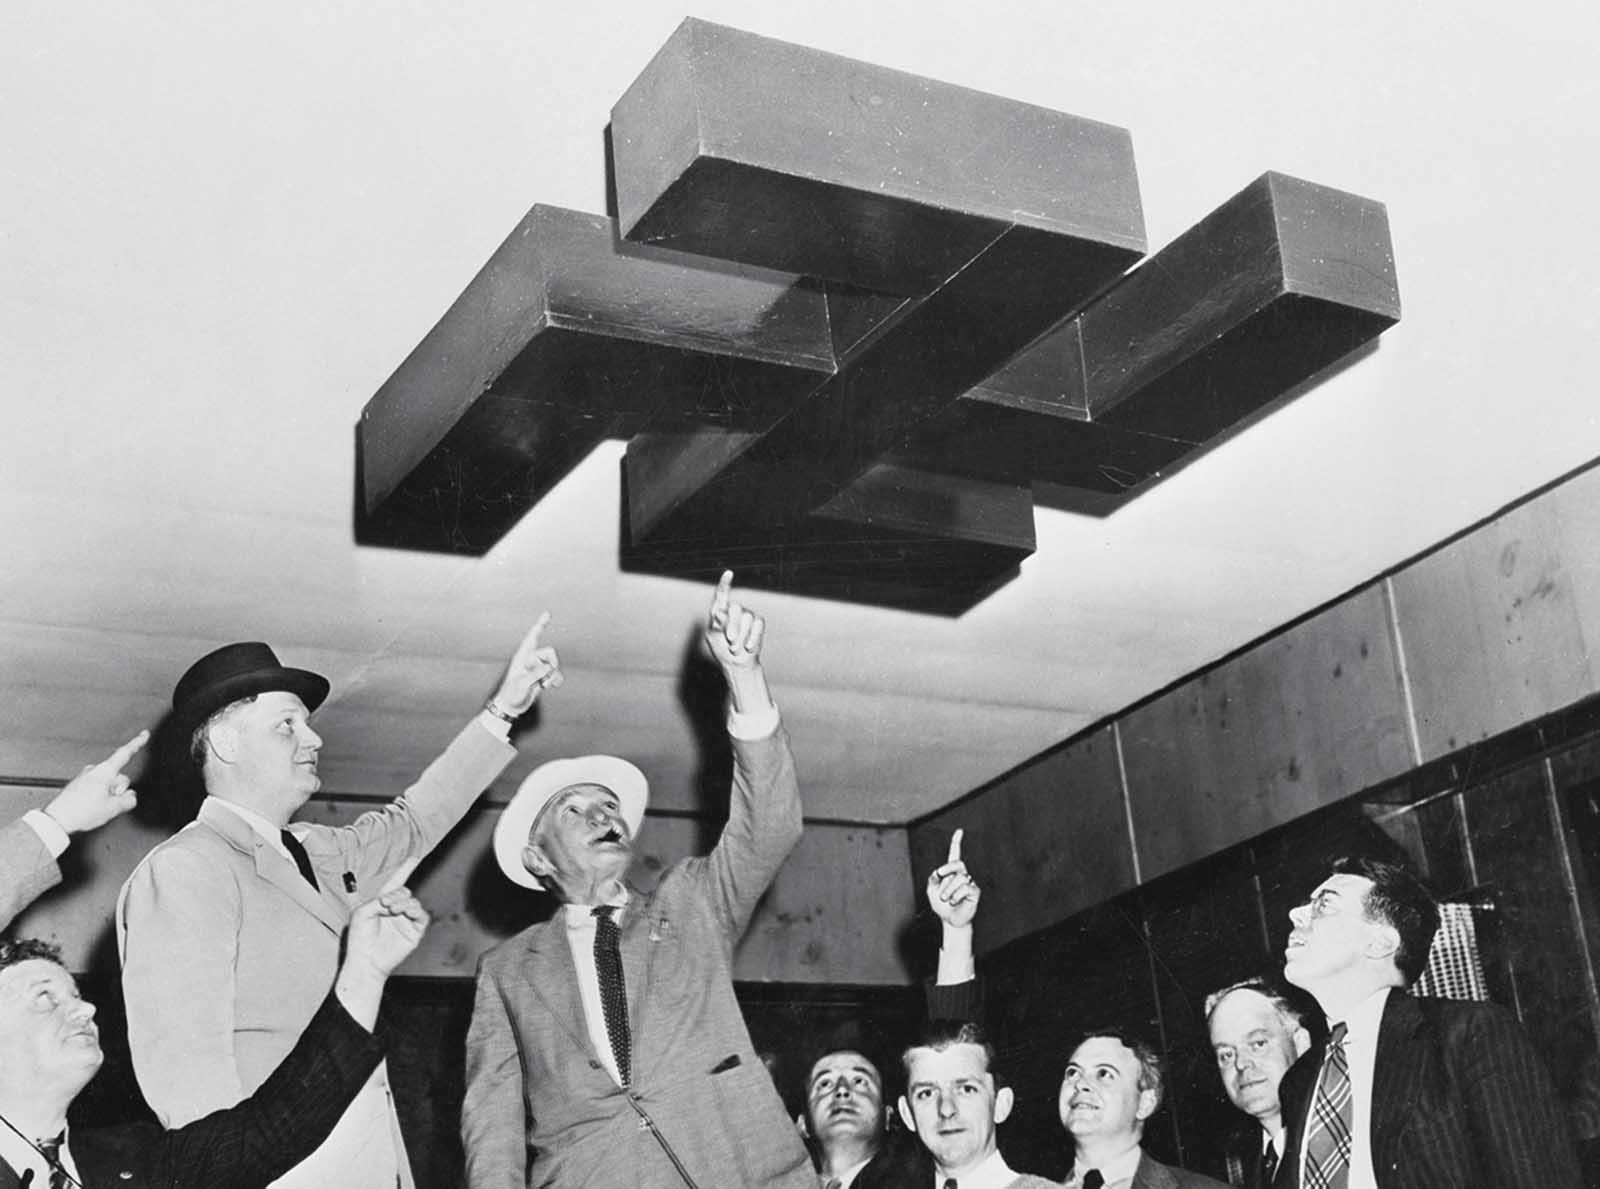 Original caption: Andover, New Jersey: Bund Camp Raided. Sheriffs Deputies who assisted Sheriff Denton J. Quick, of Sussex County in raid on German American Bund Camp Nordland at Andover, New Jersey, shown examining swastika decoration on ceiling of one of the assembly halls at the camp.